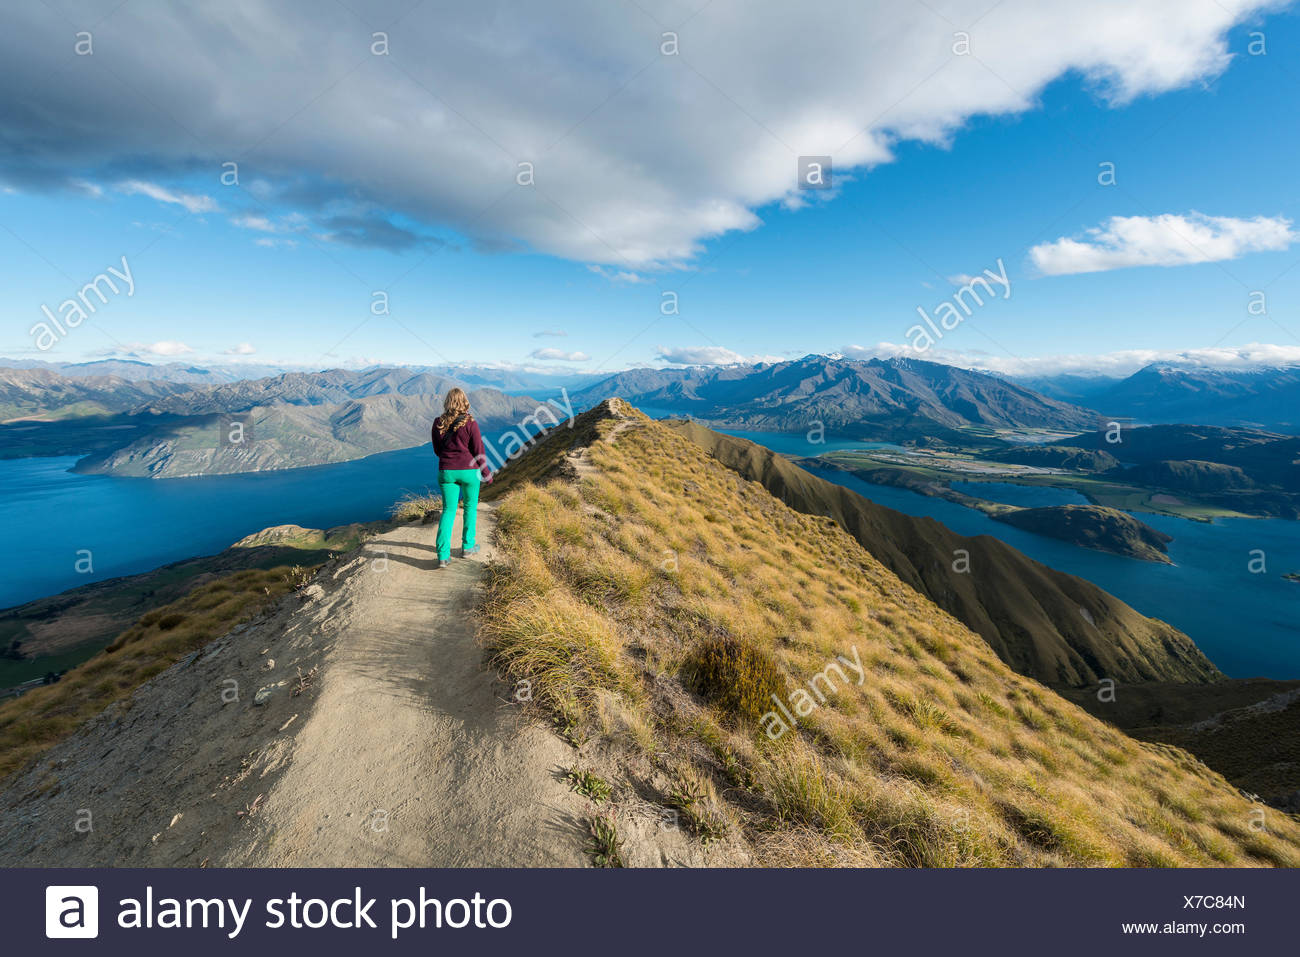 Woman hiking on ridge, view of mountains and lake, Roys Peak, Lake Wanaka, Southern Alps, Otago Region, Southland, New Zealand - Stock Image